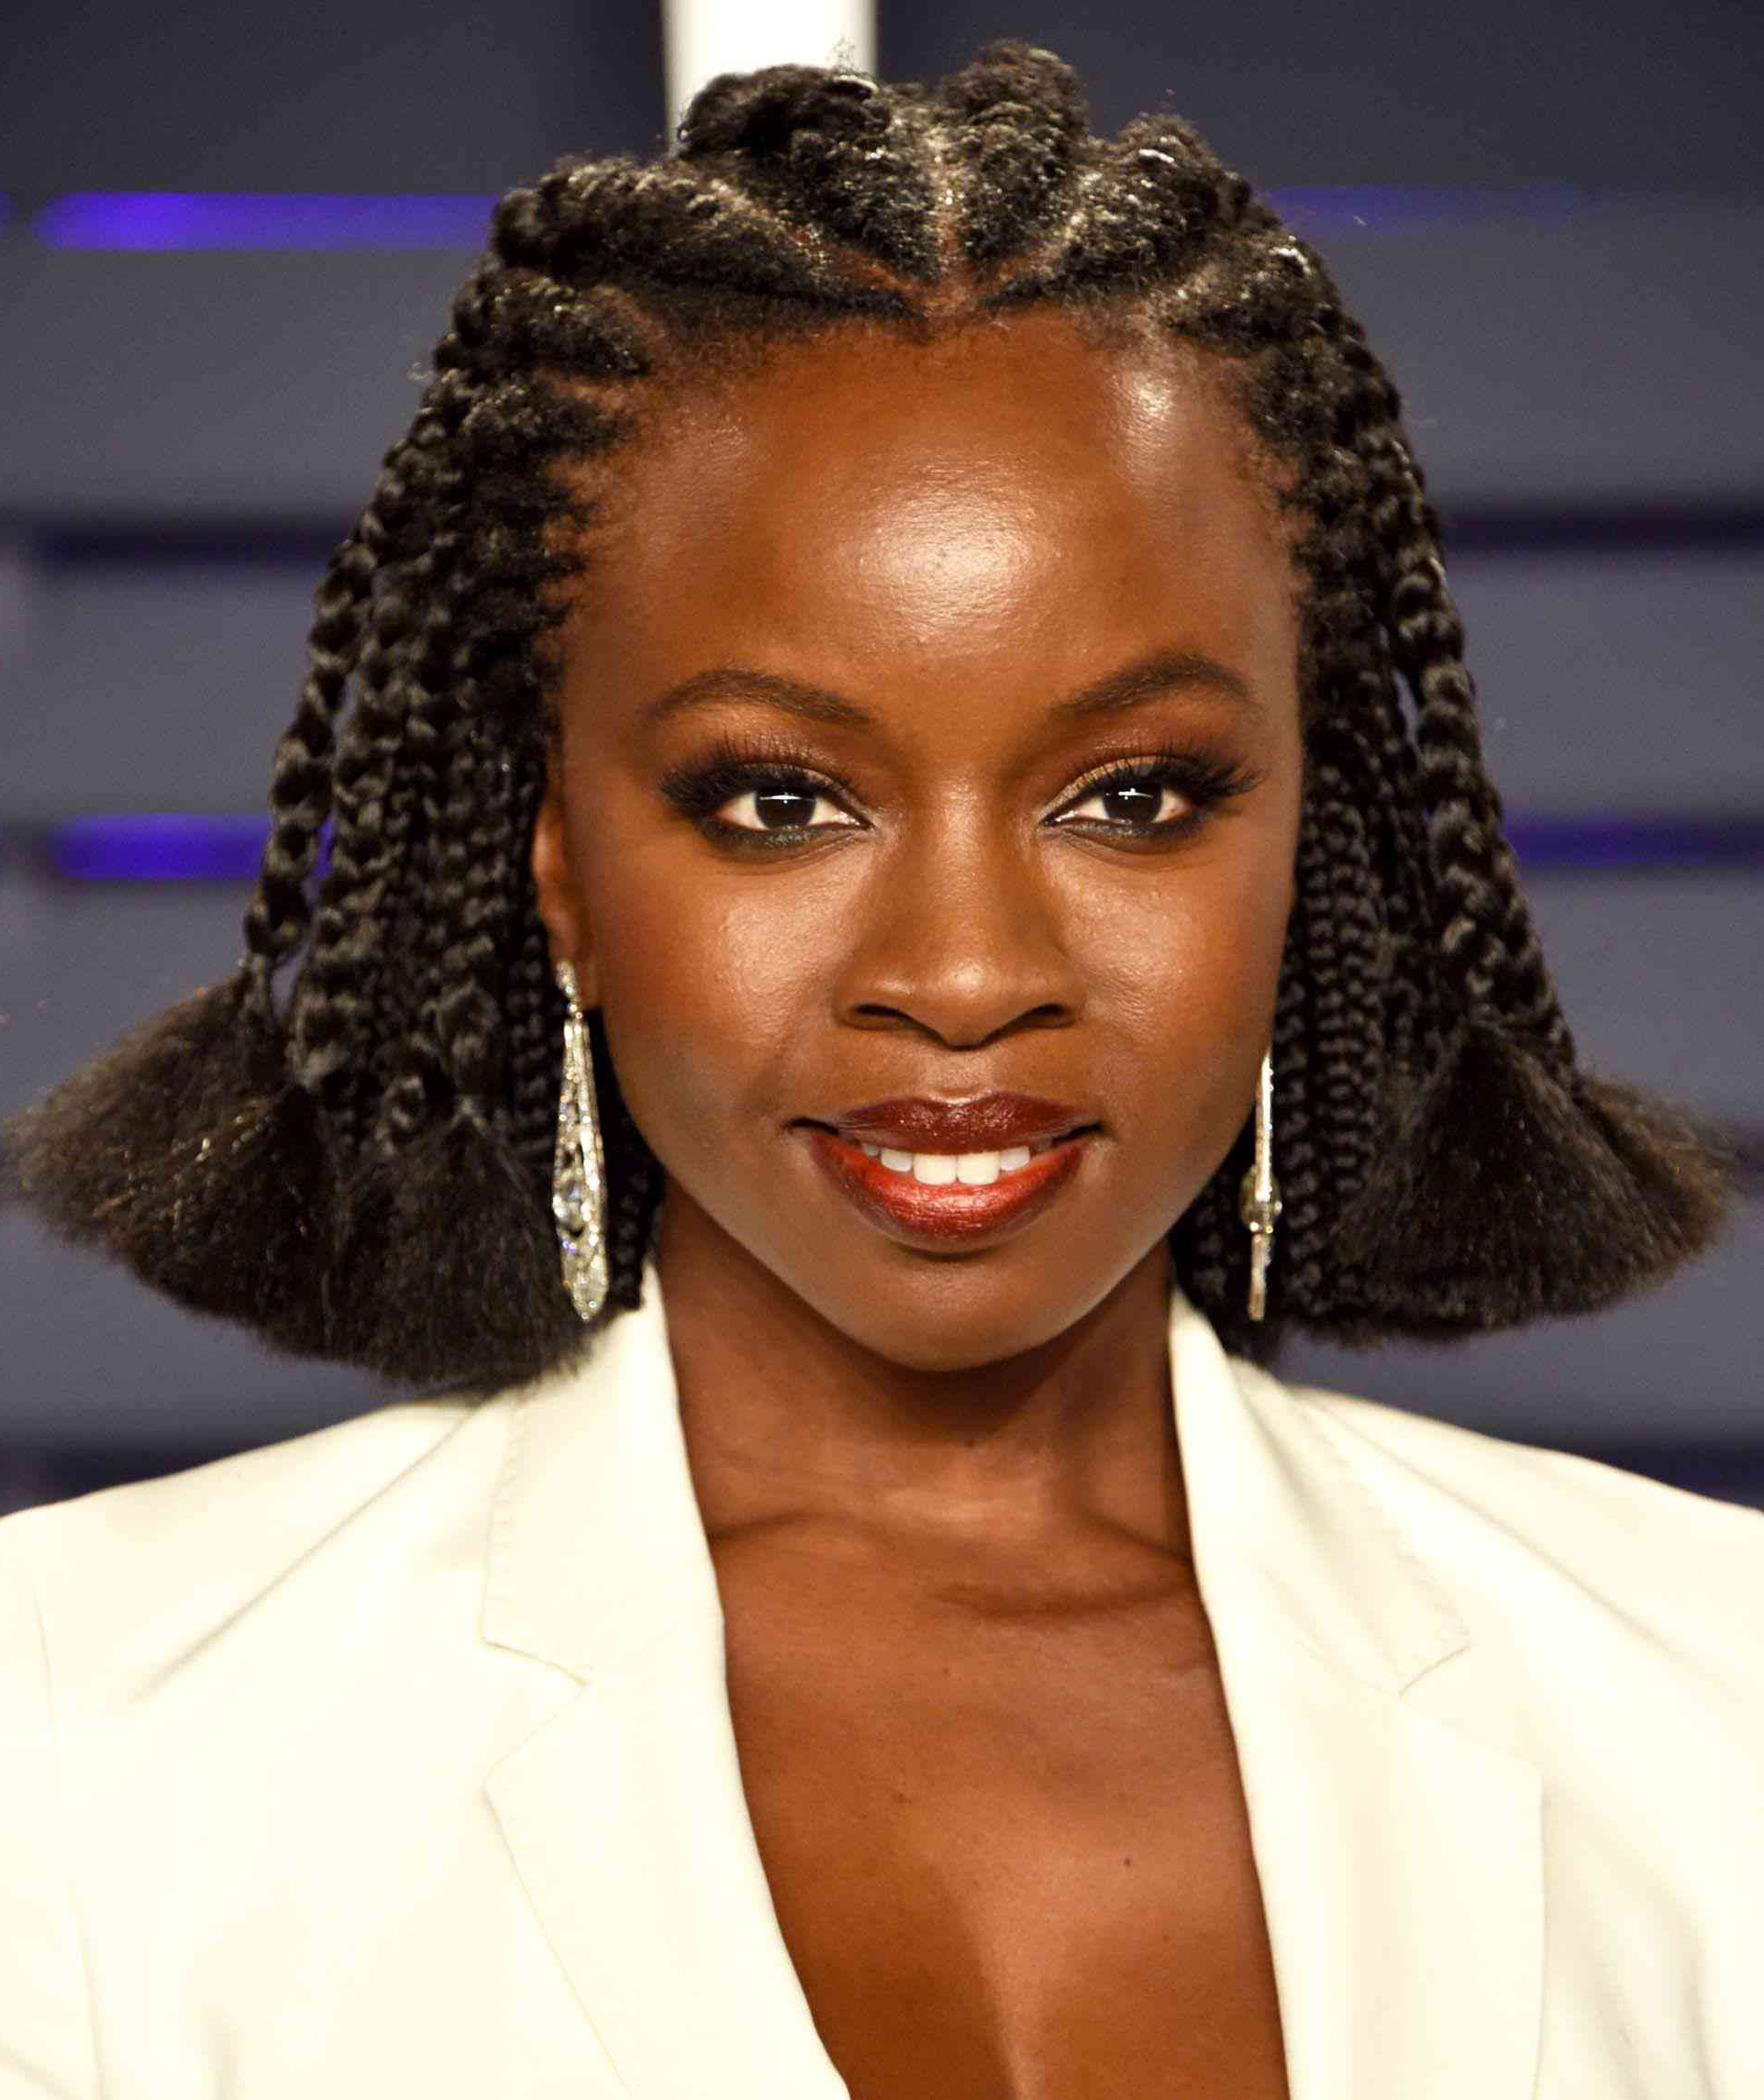 Most Current Braided Crown Hairstyles With Bright Beads Intended For 20 Stunning Braided Hairstyles For Natural Hair (View 13 of 20)